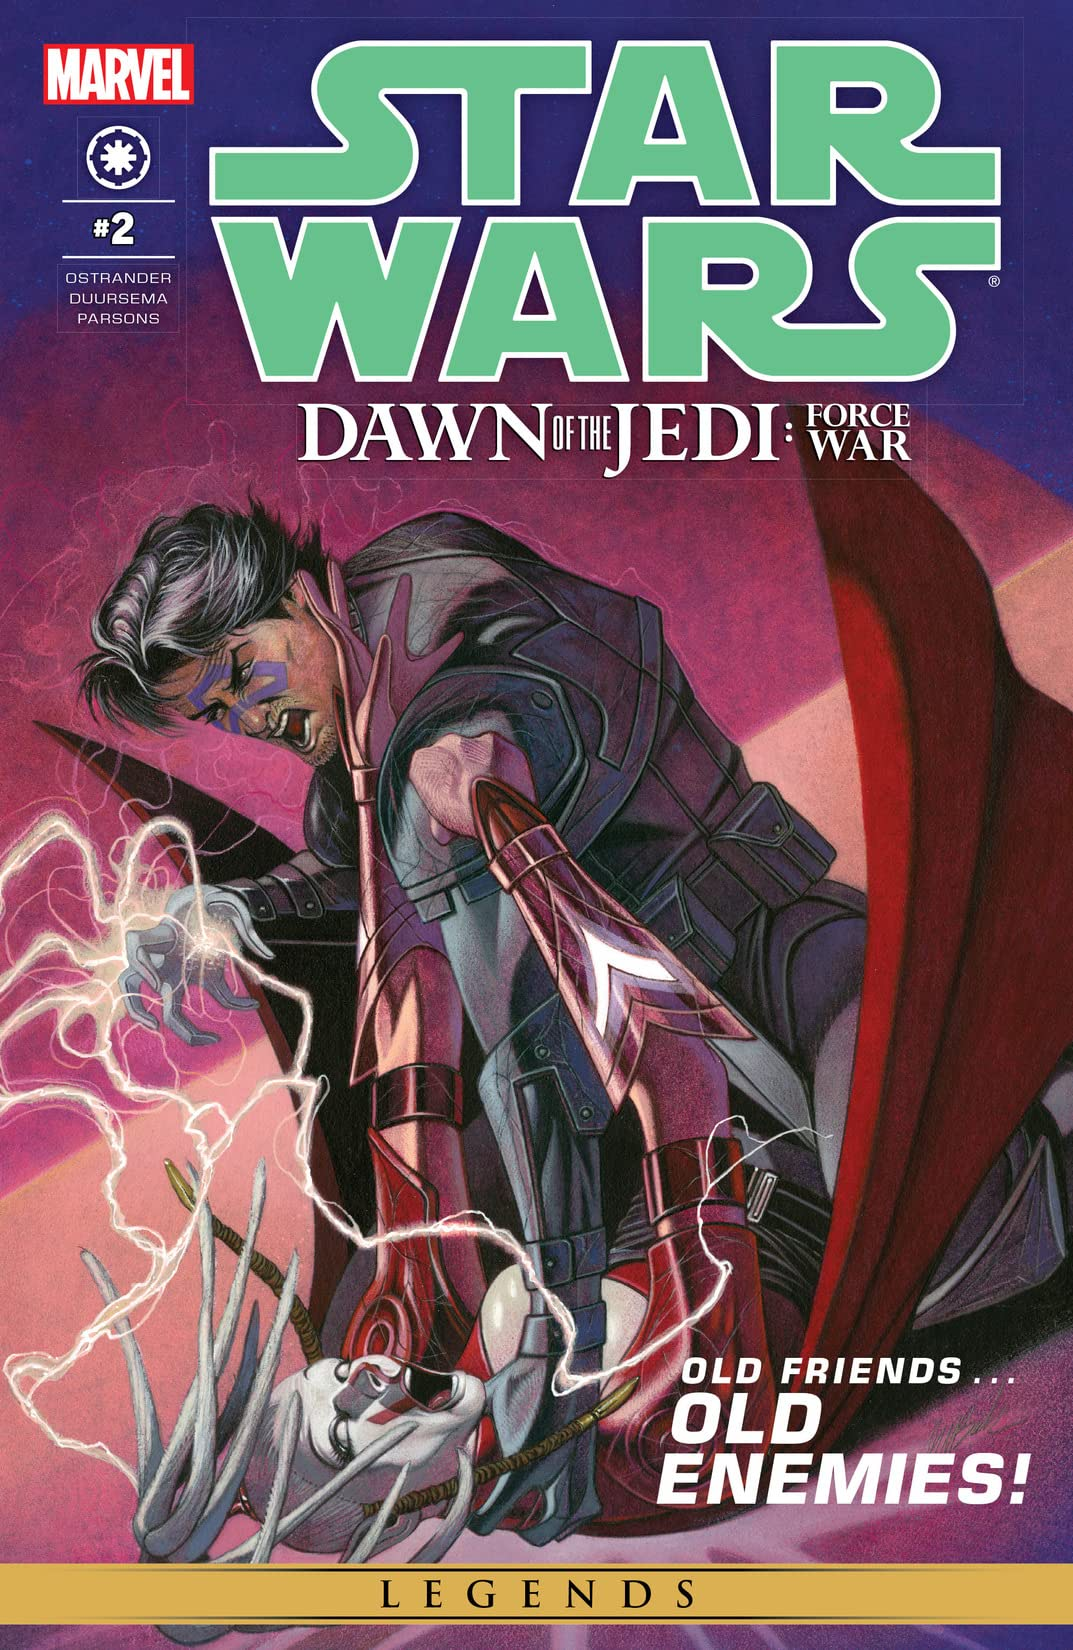 Star Wars: Dawn of the Jedi - Force War (2013-2014) #2 (of 5)